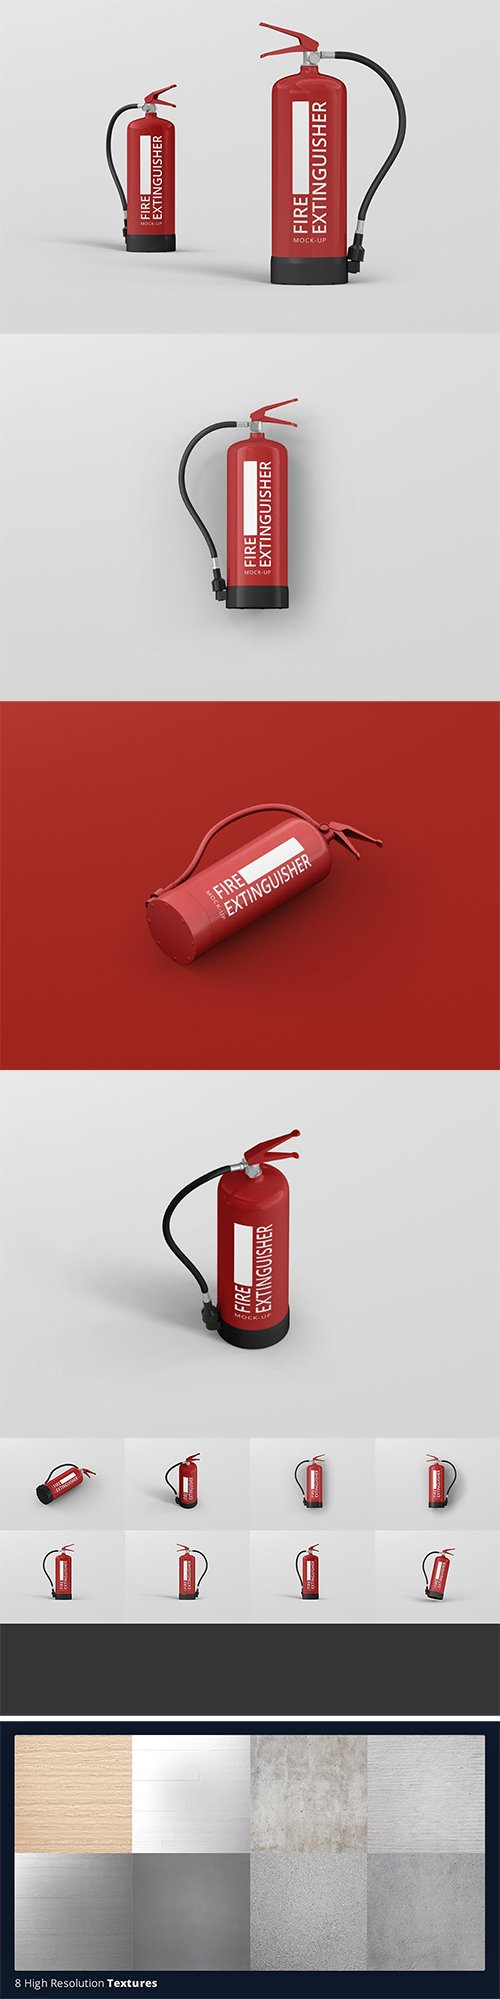 Fire Extinguisher Mockup PSD